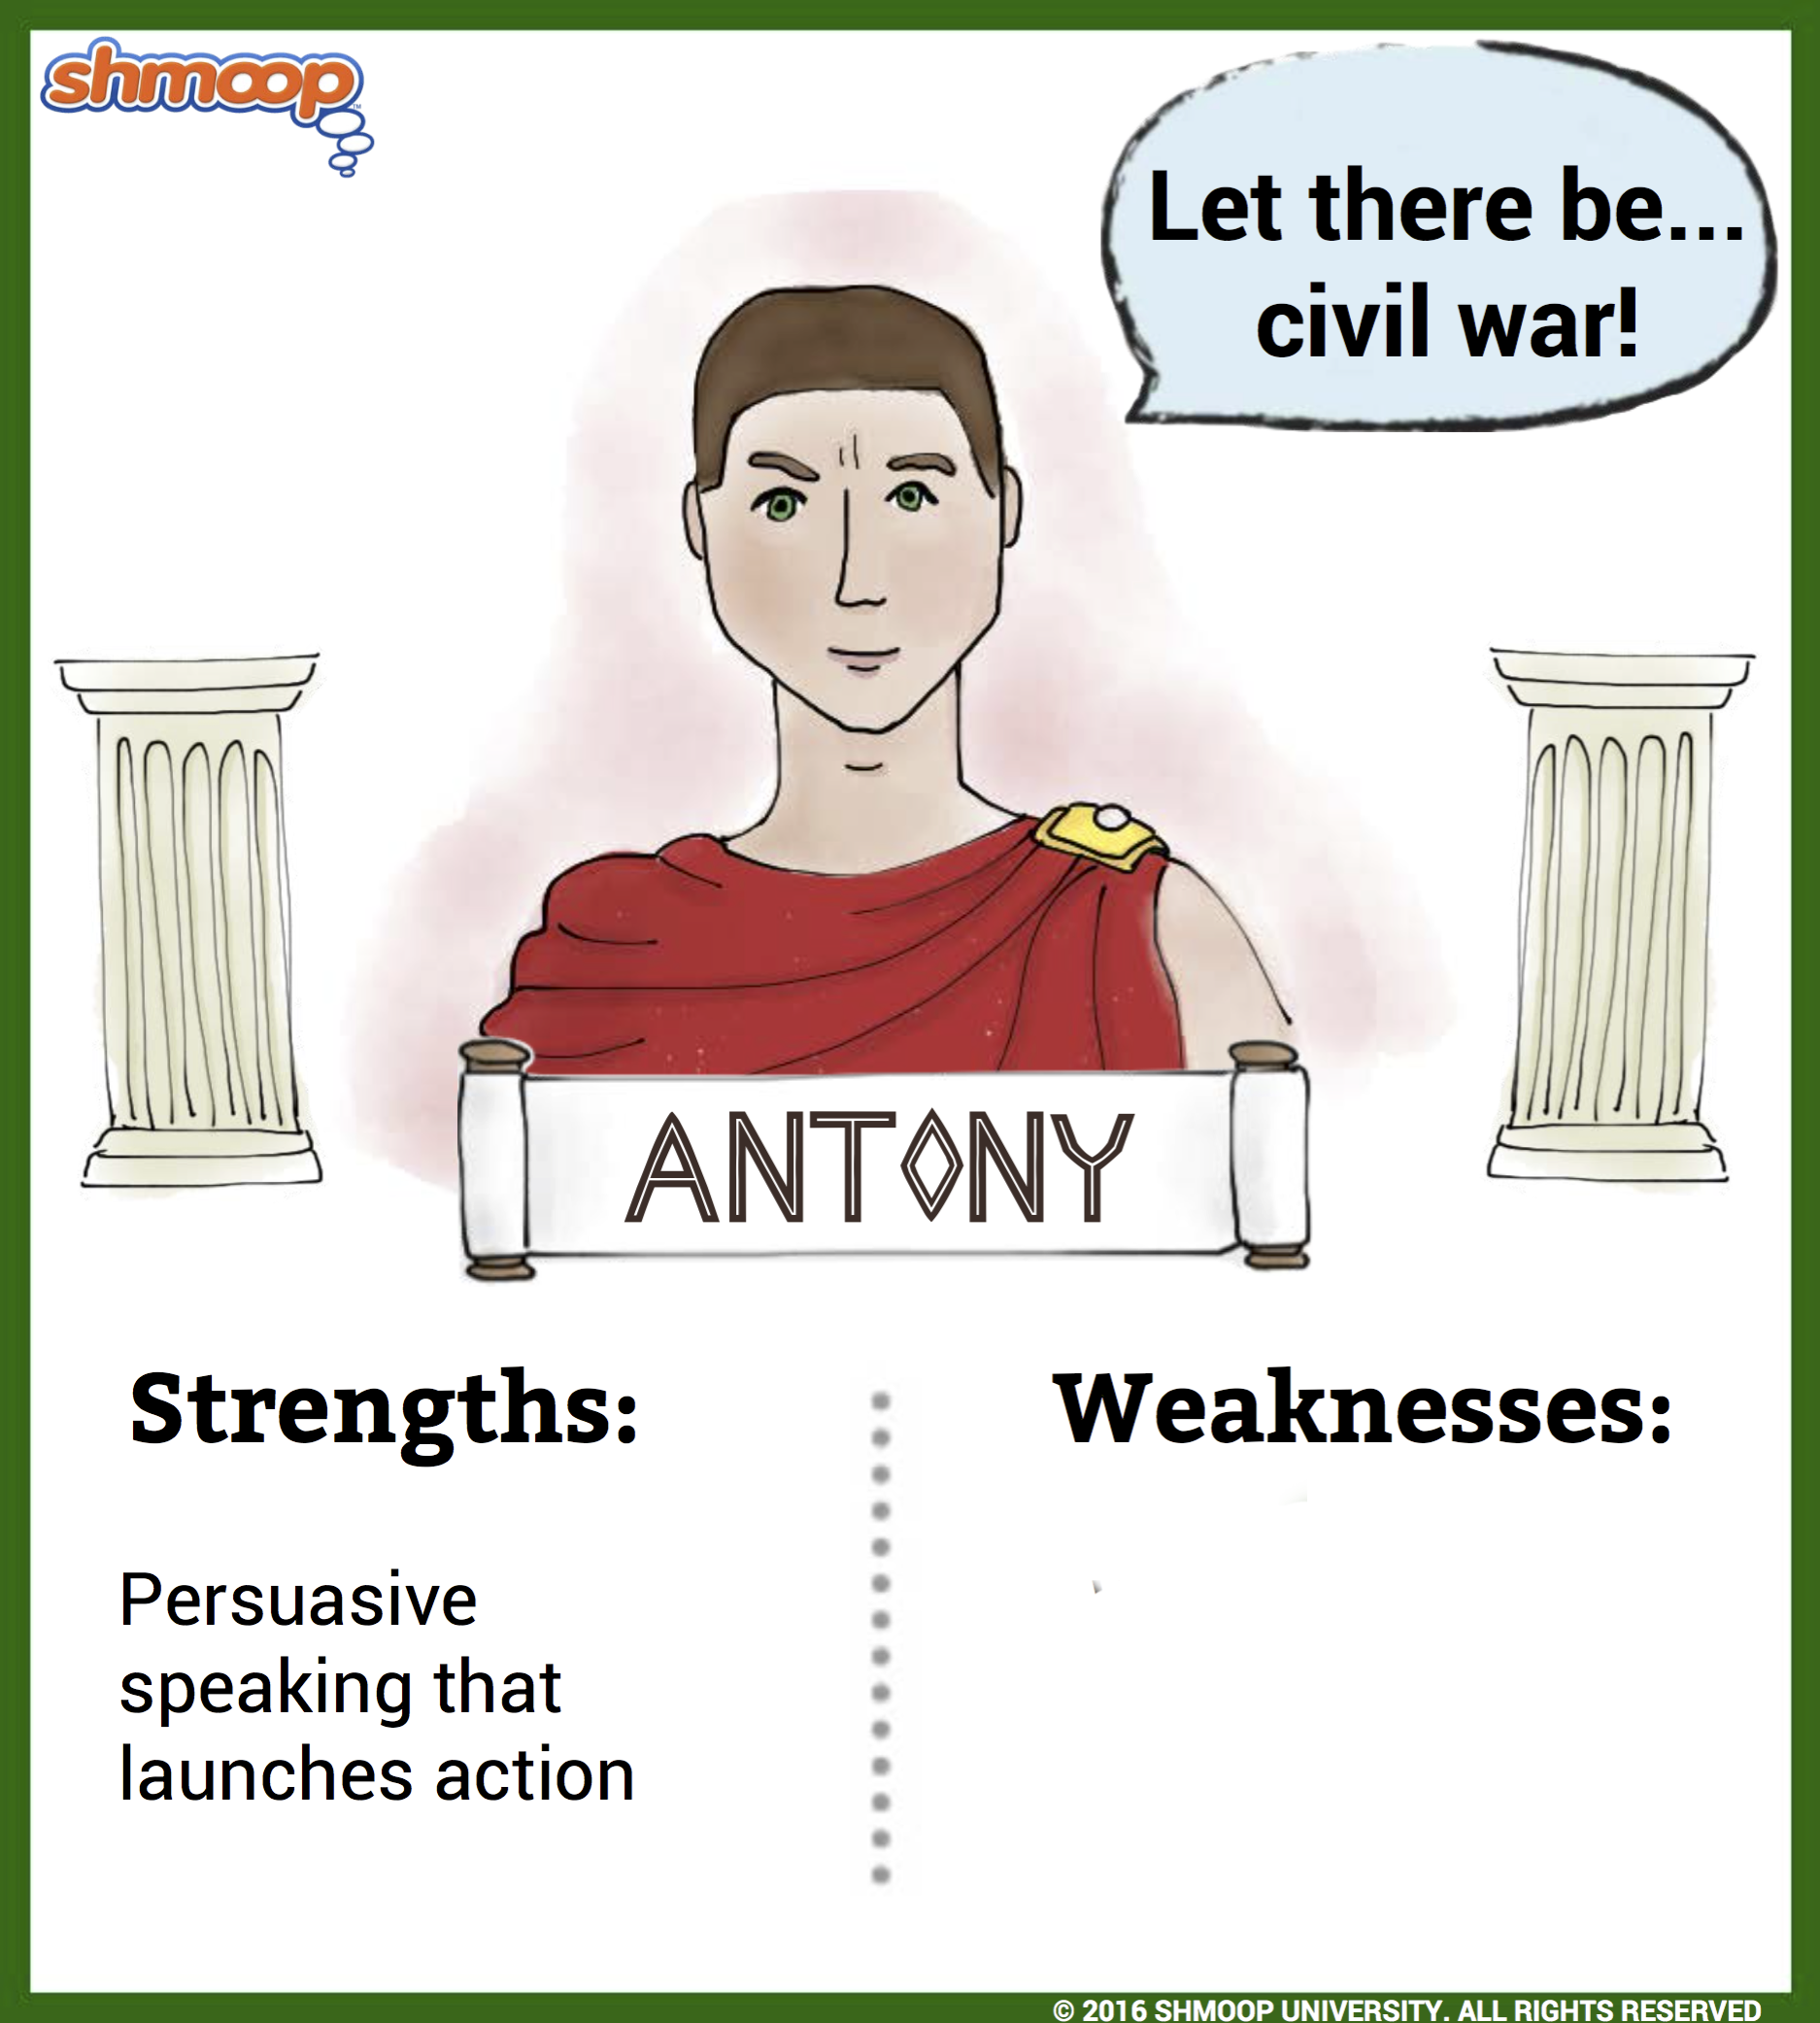 the character of marc antony in the play julius caesar Julius caesar character map julius caesar calpurnia marc antony octavius caesar lepidus decius at the start of the play, he is 44.